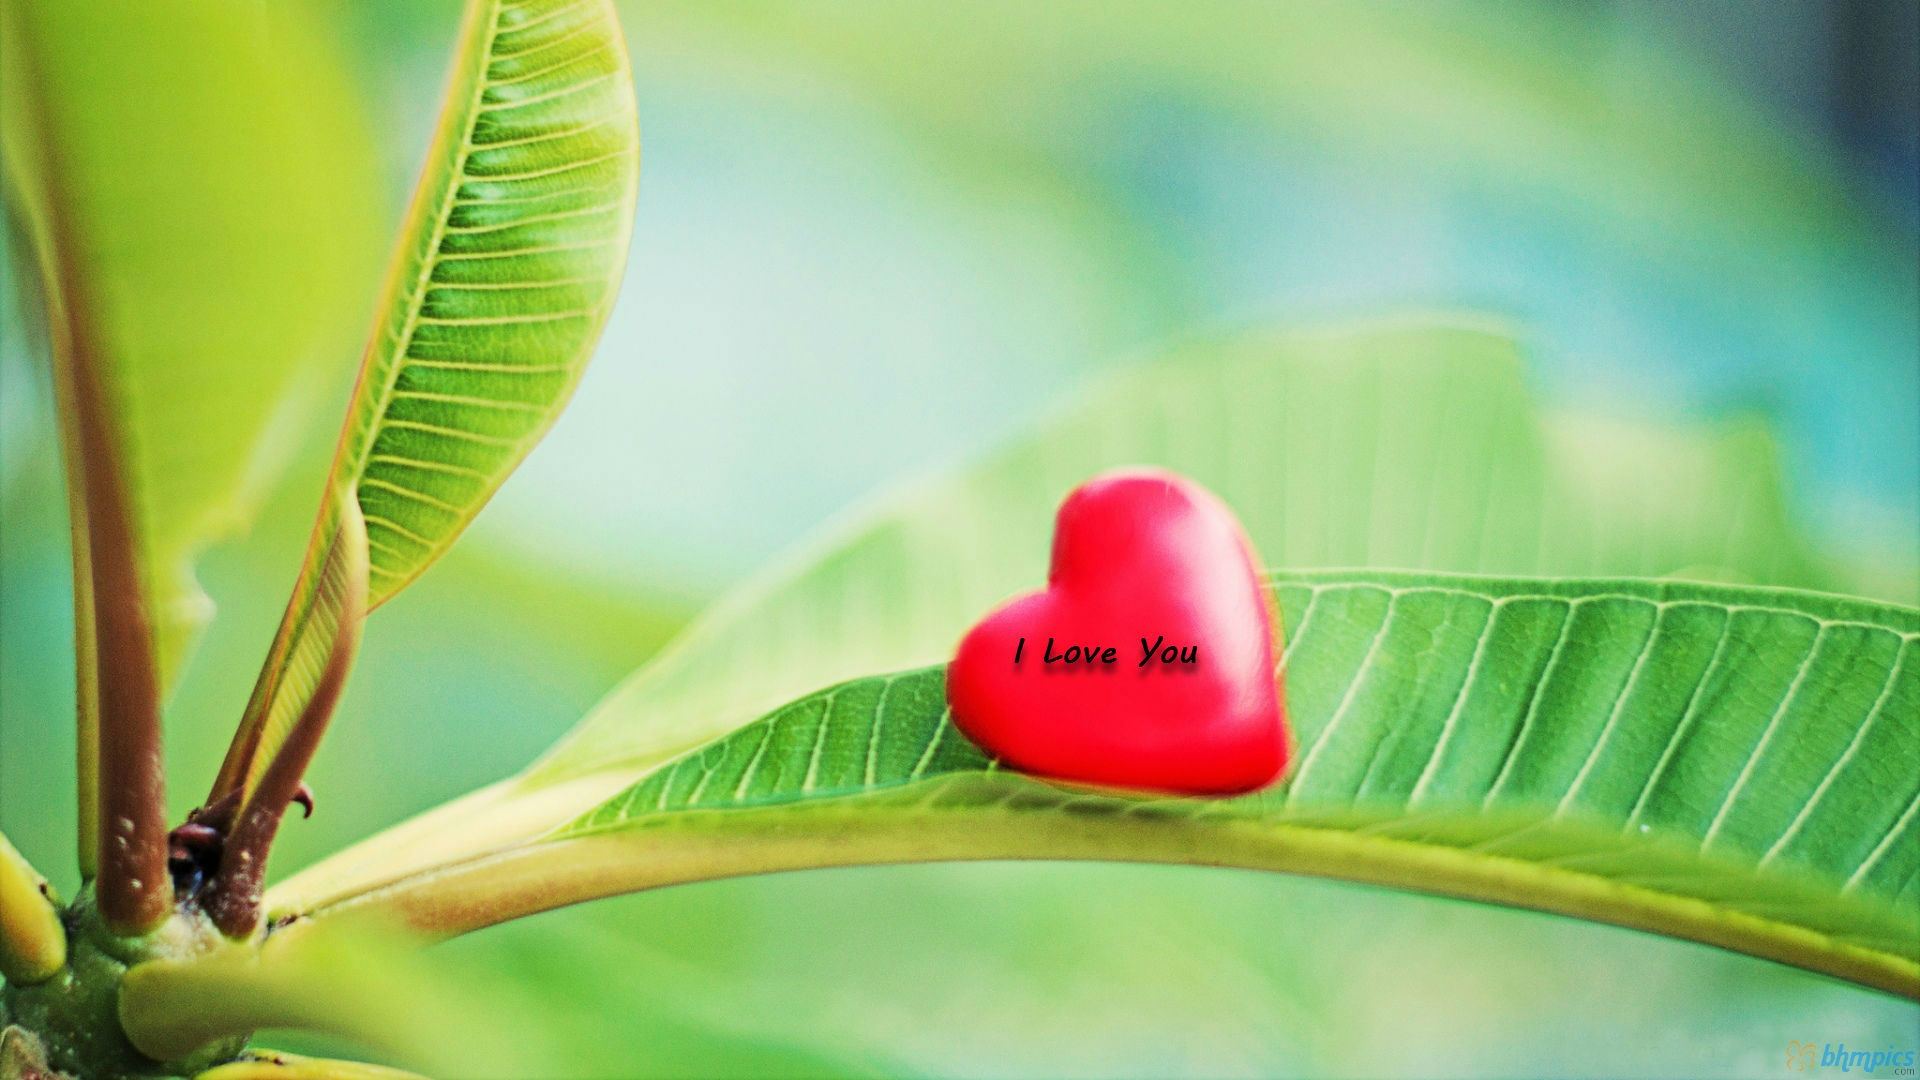 cute Love Wallpaper In 3d : love wallpaper nature cute - HD Desktop Wallpapers 4k HD